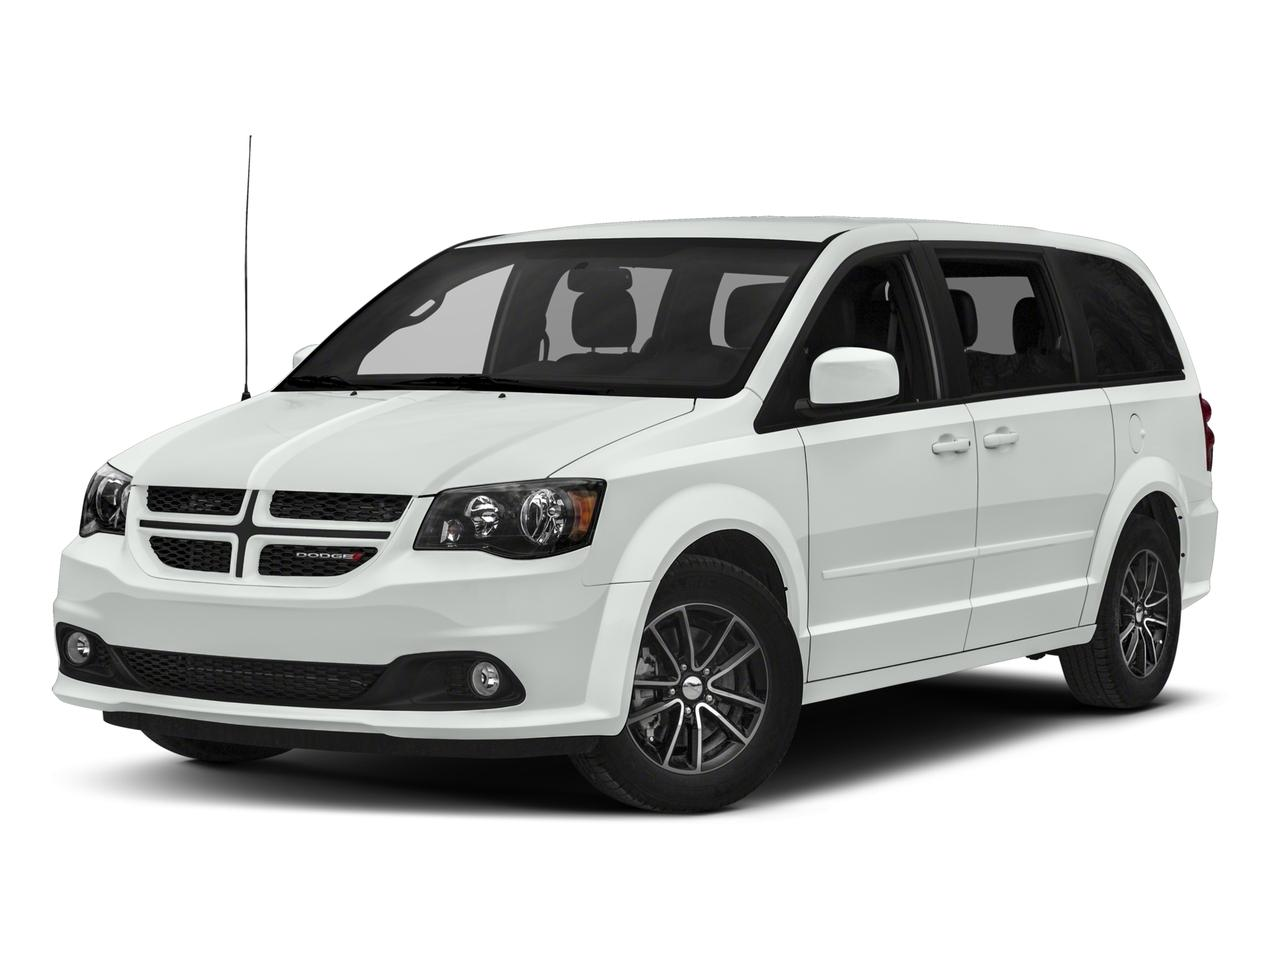 2018 Dodge Grand Caravan Vehicle Photo in Bowie, MD 20716